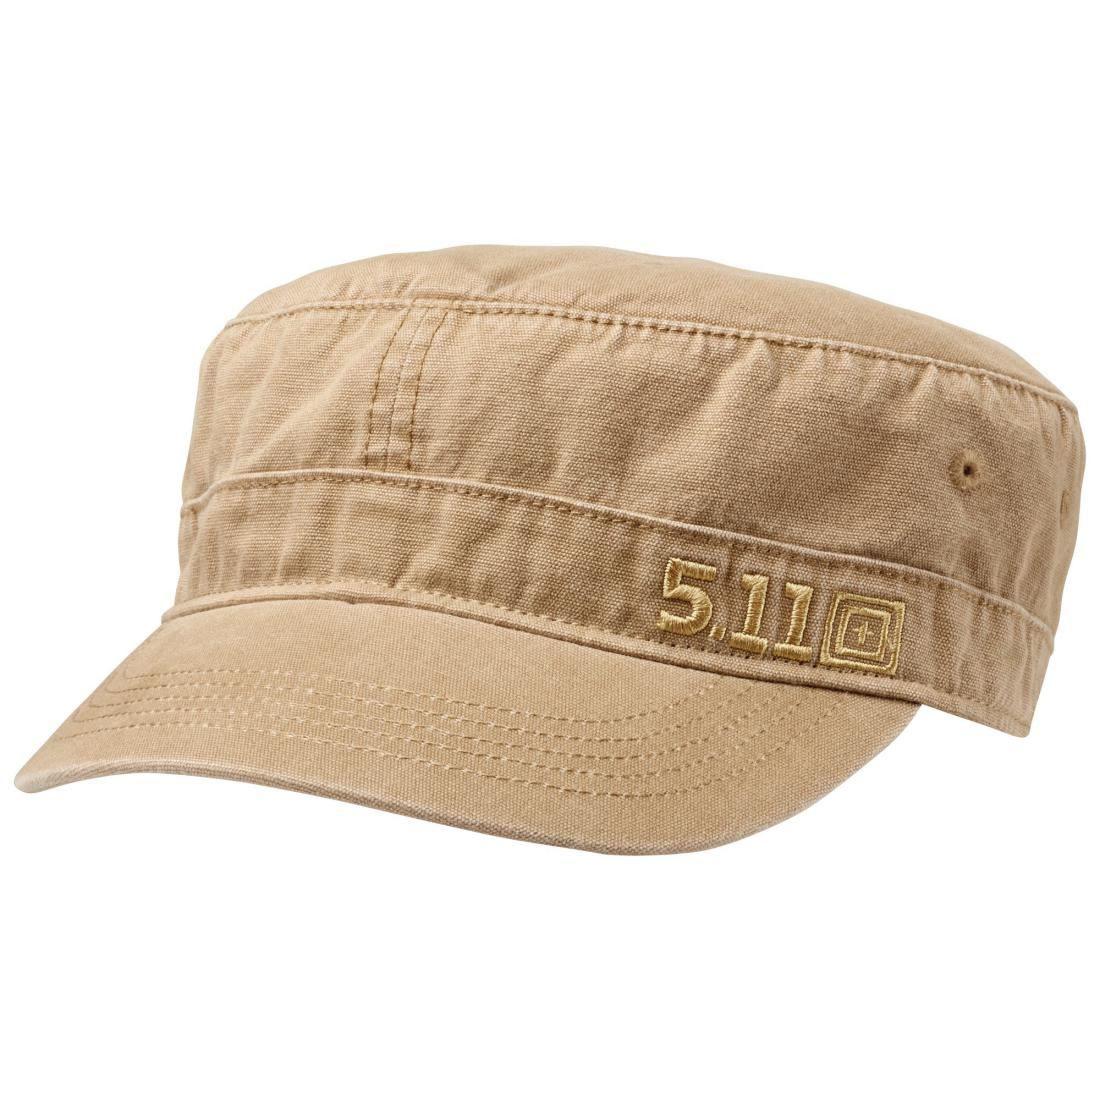 5.11 Tactical 89411 Women Boot Camp Hat Coyote